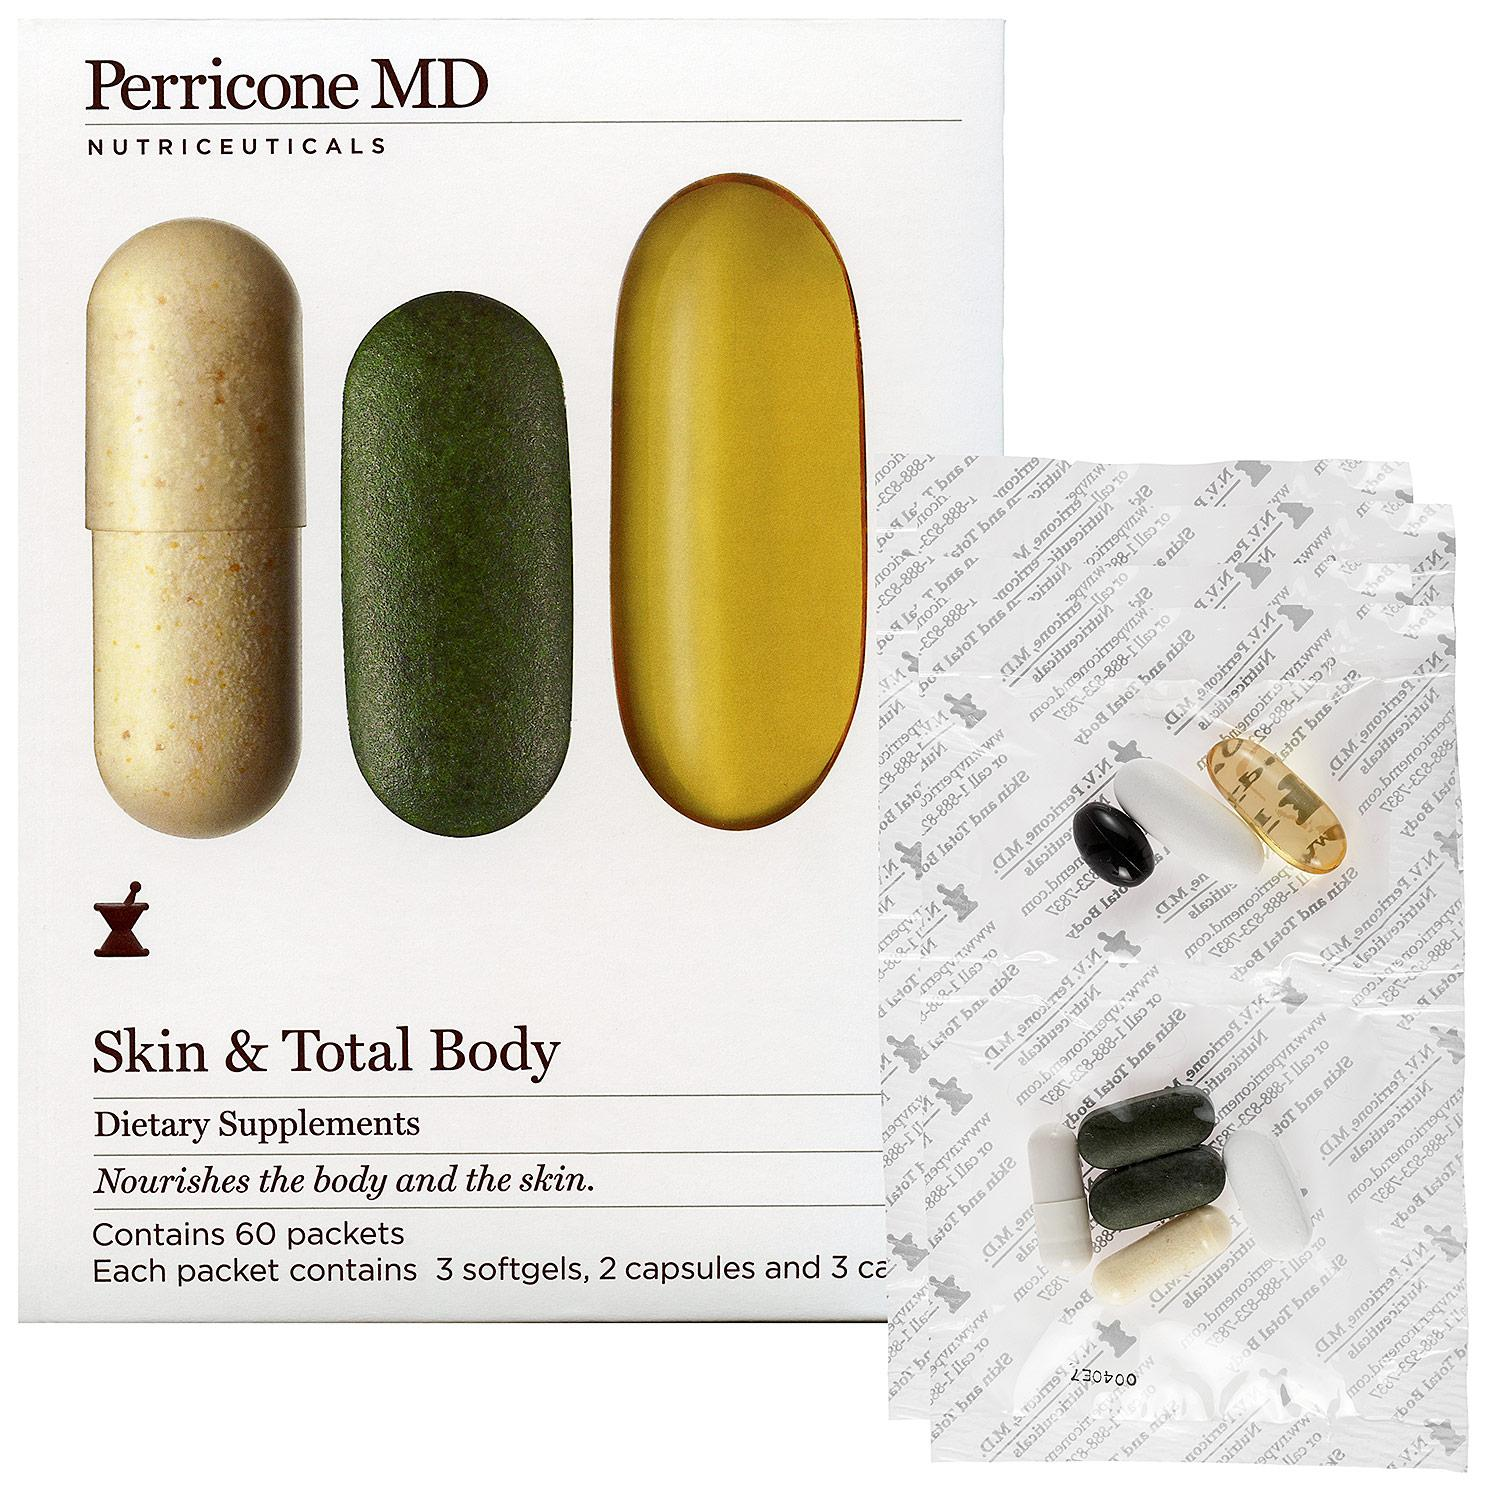 Skin & Total Body Dietary Supplements